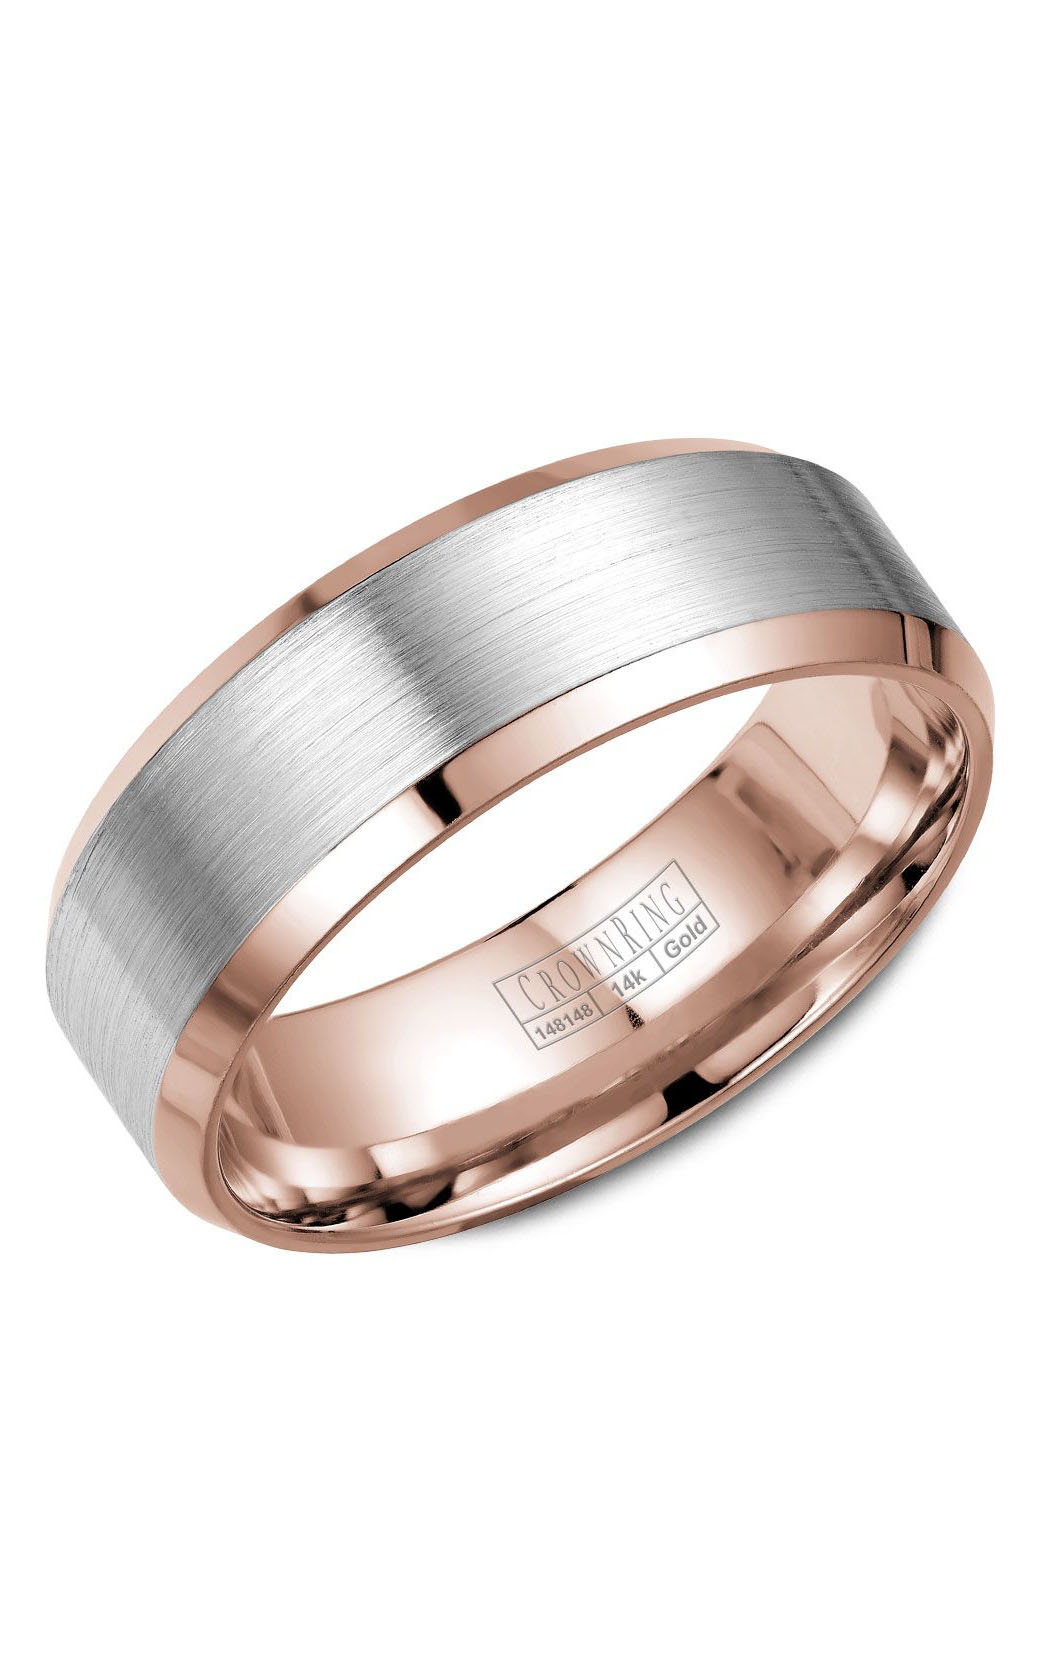 Crown Ring Men's Wedding Band WB-7131WR product image